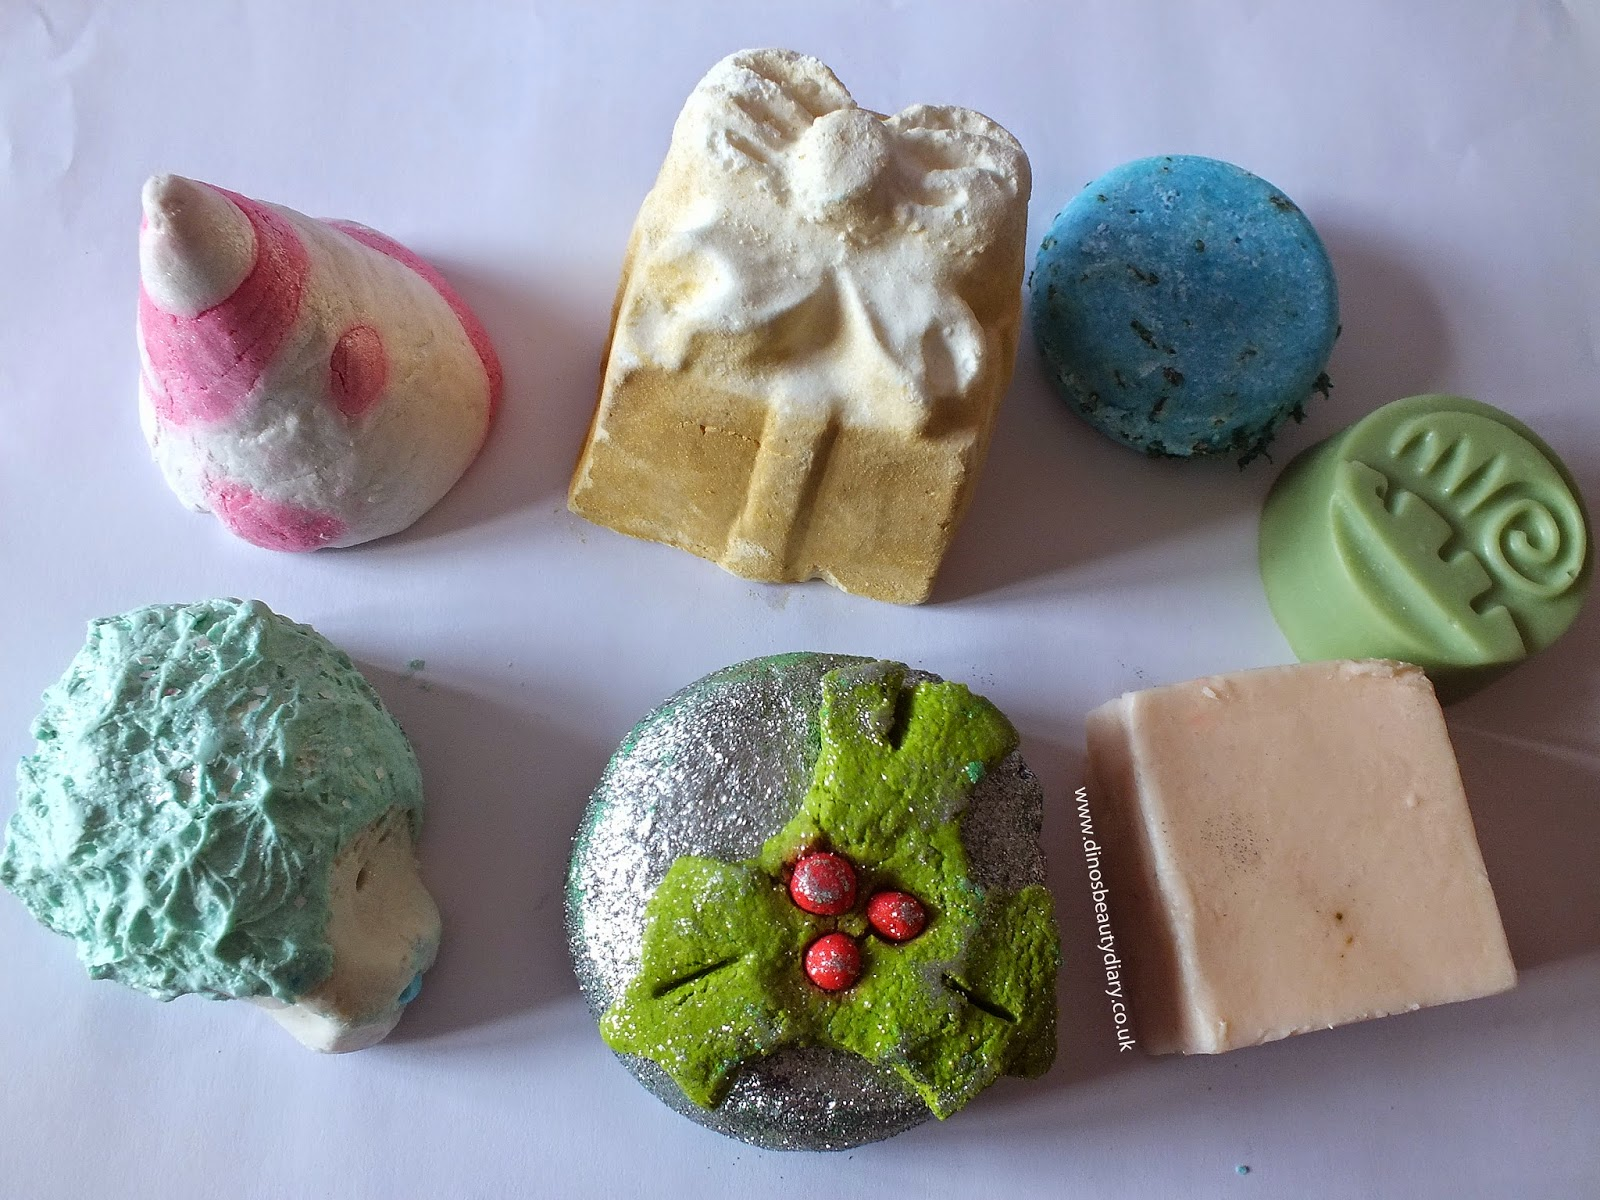 Dino's Beauty Diary - Lush Pre-Christmas Haul - Lush Bath bombs, bubble bars, haircare